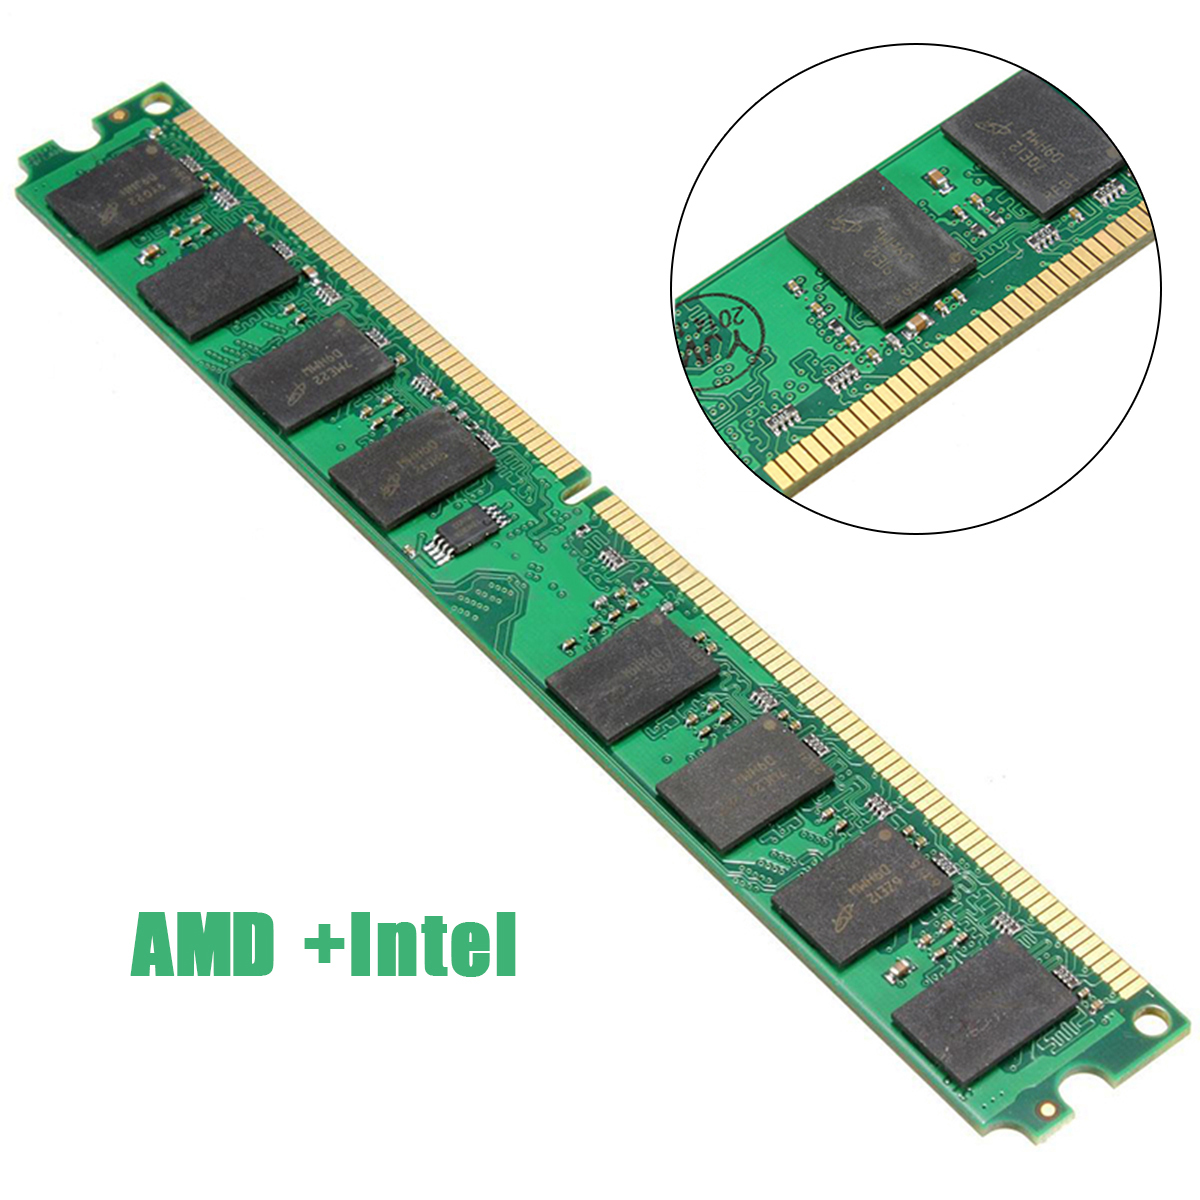 PC Memory <font><b>RAM</b></font> Module Computer Desktop 2GB <font><b>DDR3</b></font> 1333MHz <font><b>PC3</b></font>-<font><b>10600</b></font> 240pin Fit For AMD Intel System image